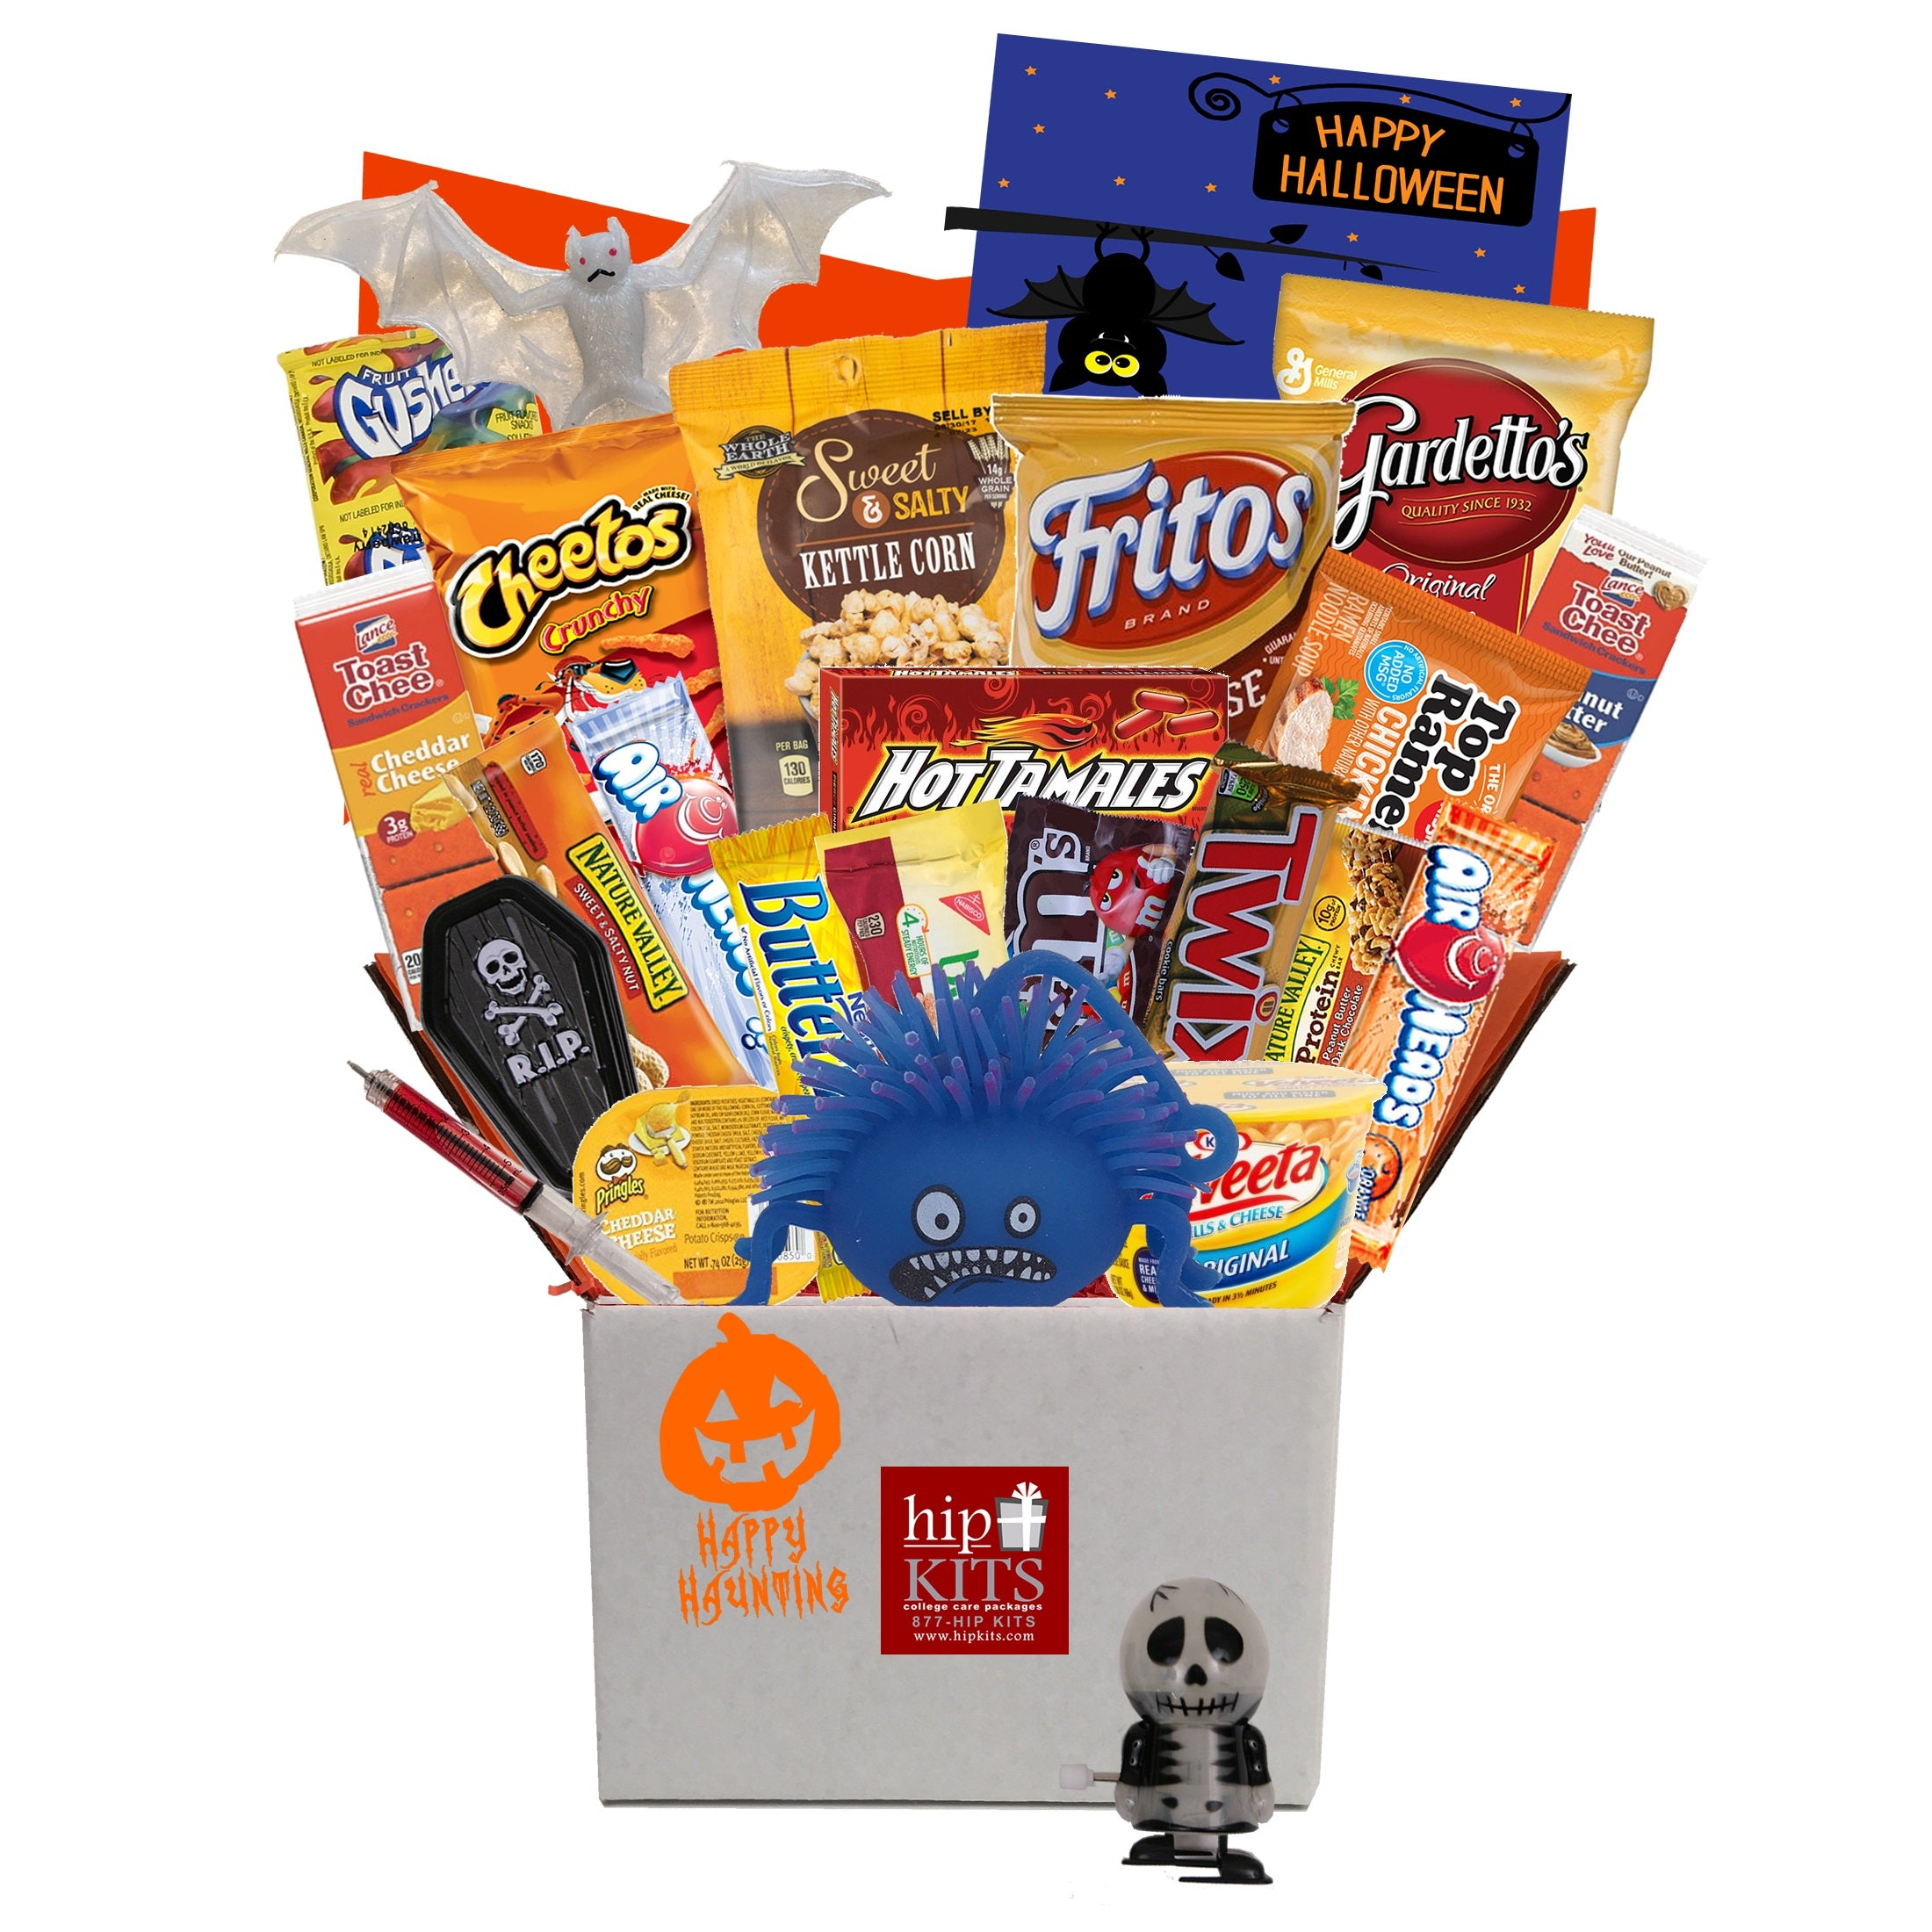 Happy Haunting Snack Pack - hipkits.com